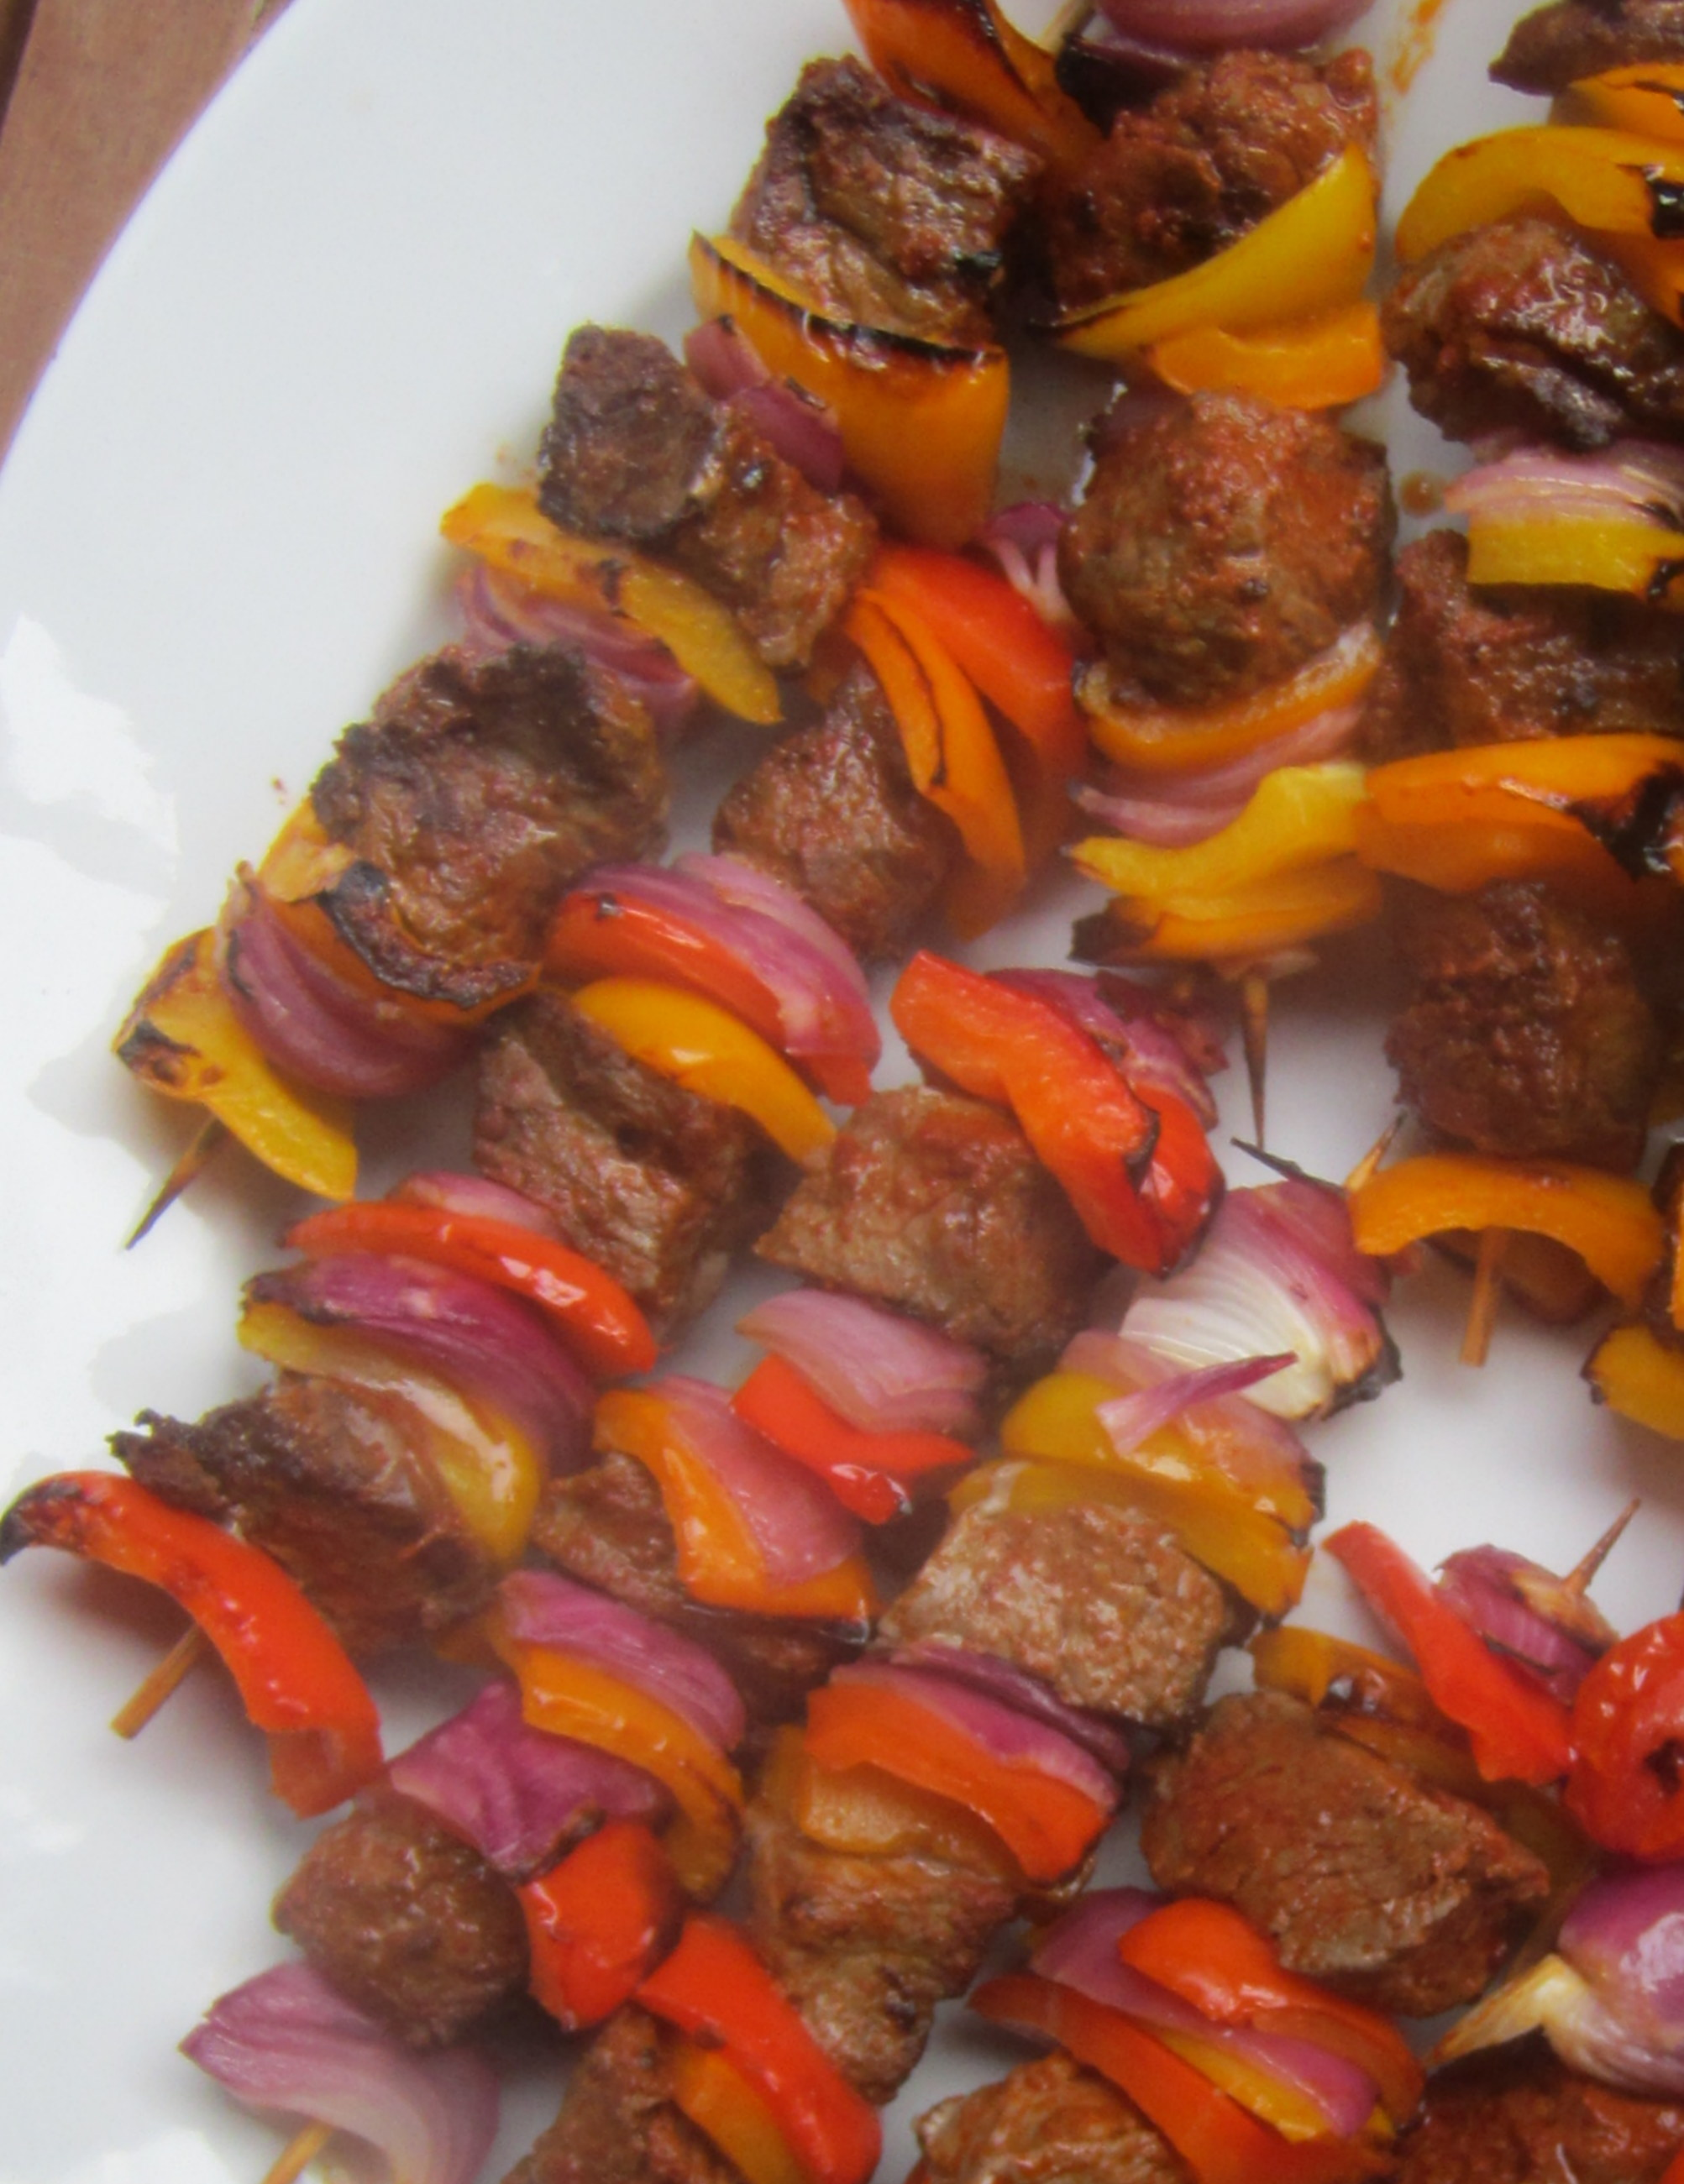 Broiled Beef and Veggie Skewers with Avocado Dipping Sauce